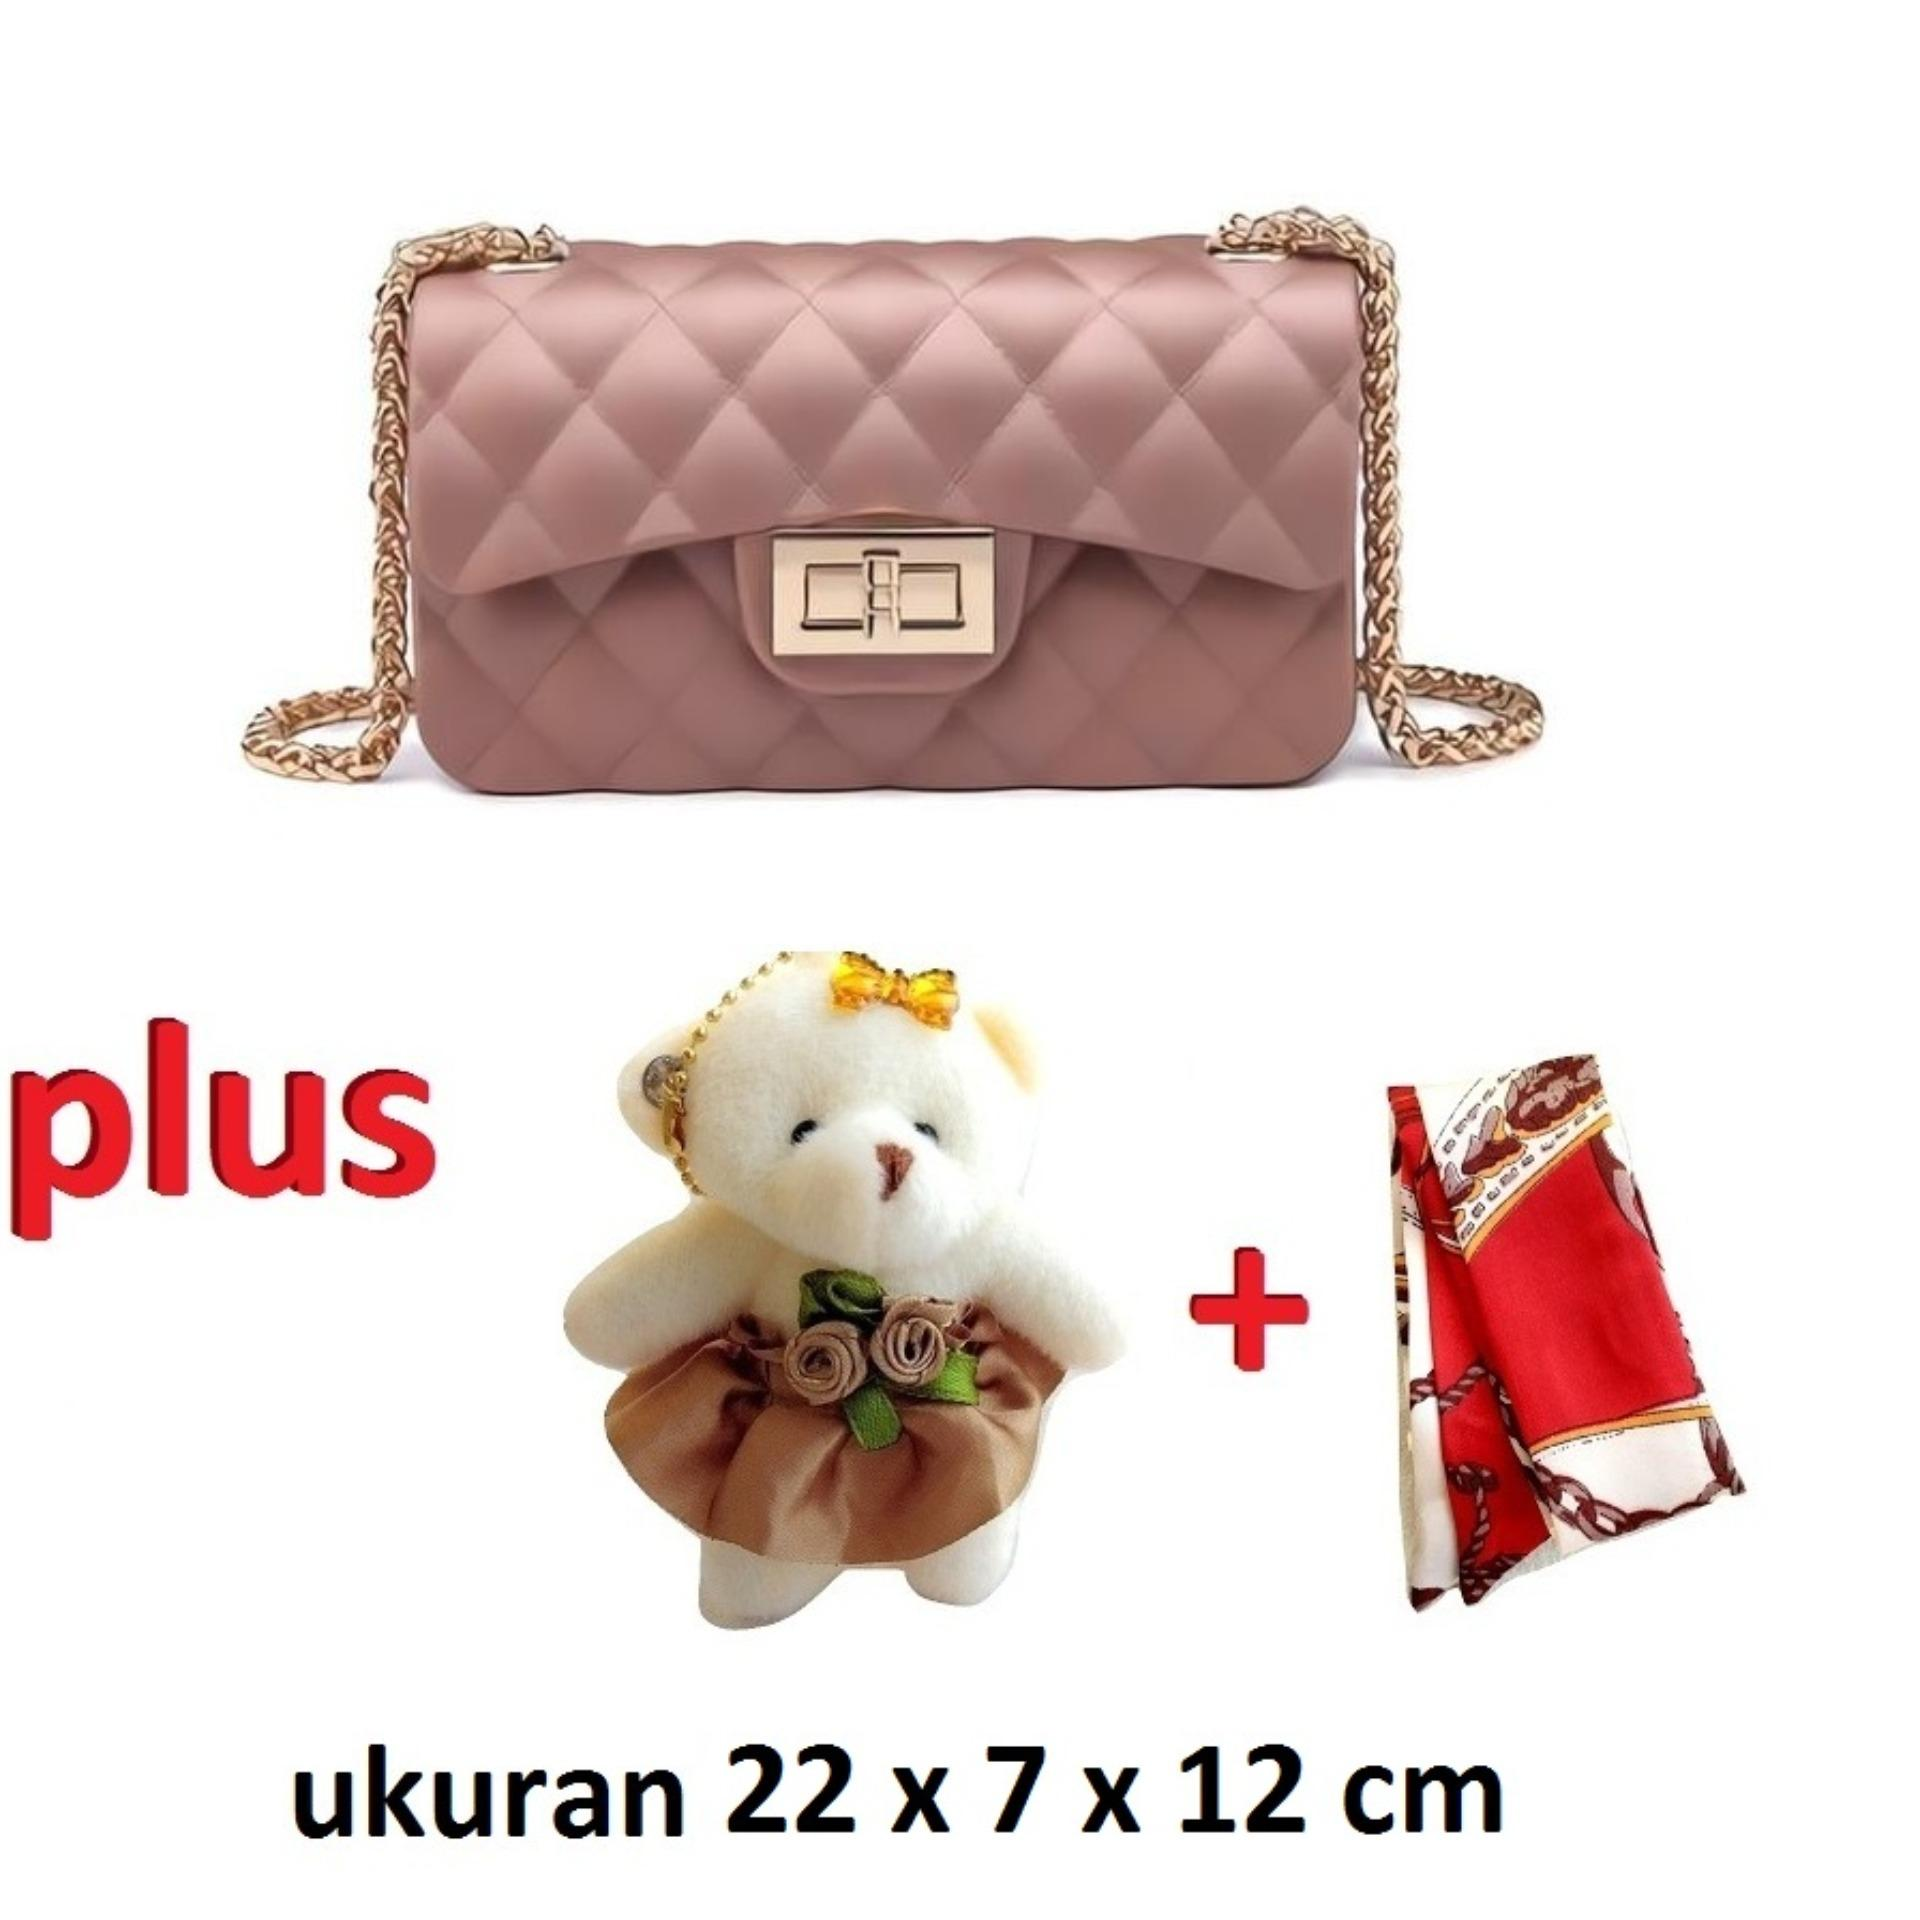 JCF Tas Import Jelly PREMIUM 22cm  Dove Matte Chevron PLUS Boneka Dan Syal Sling Mewah Cantik Teenager And Adult Mini Candy Bag Selempang Badan Anak Remaja Dan Wanita Dewasa  Fashion